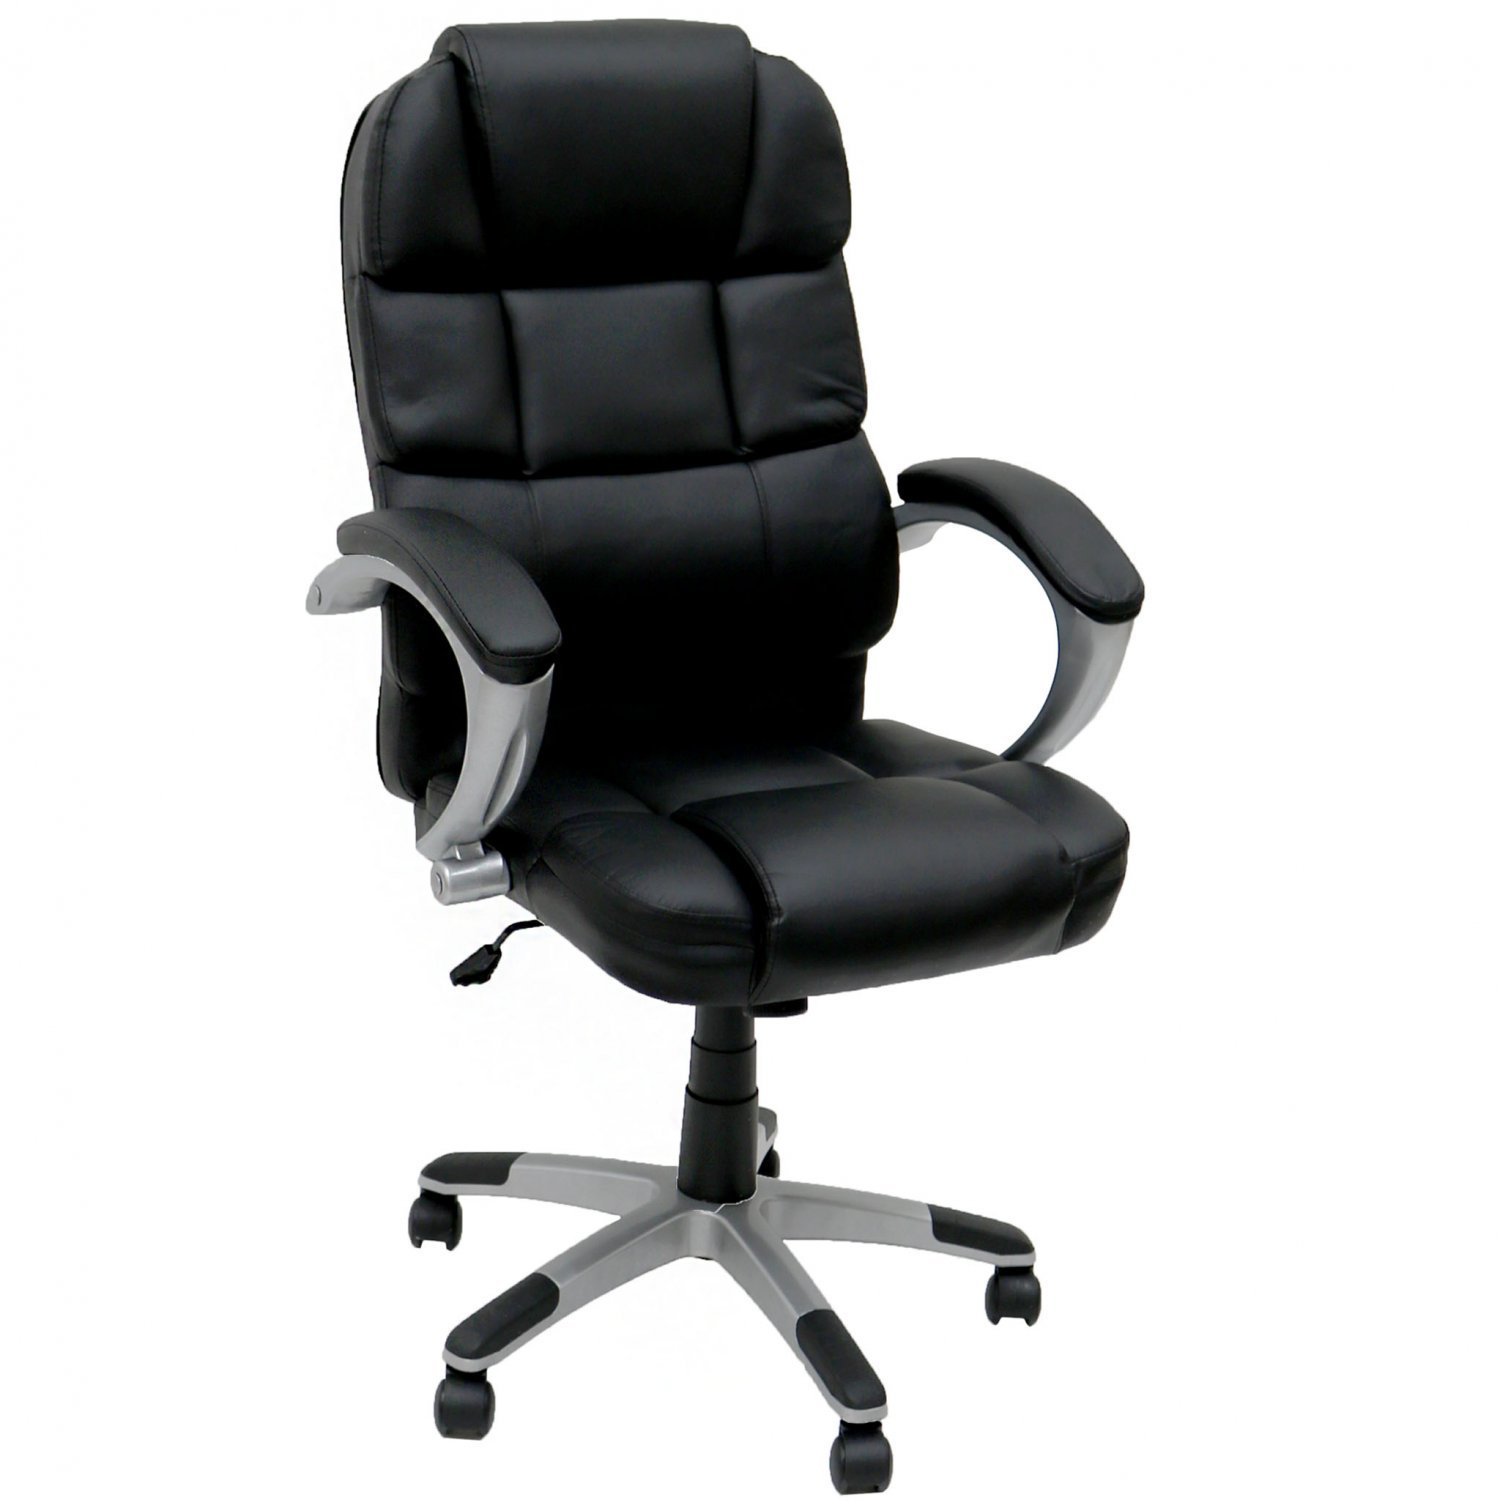 bicycle seat office chair single bed fold out luxury designer computer black 69 99